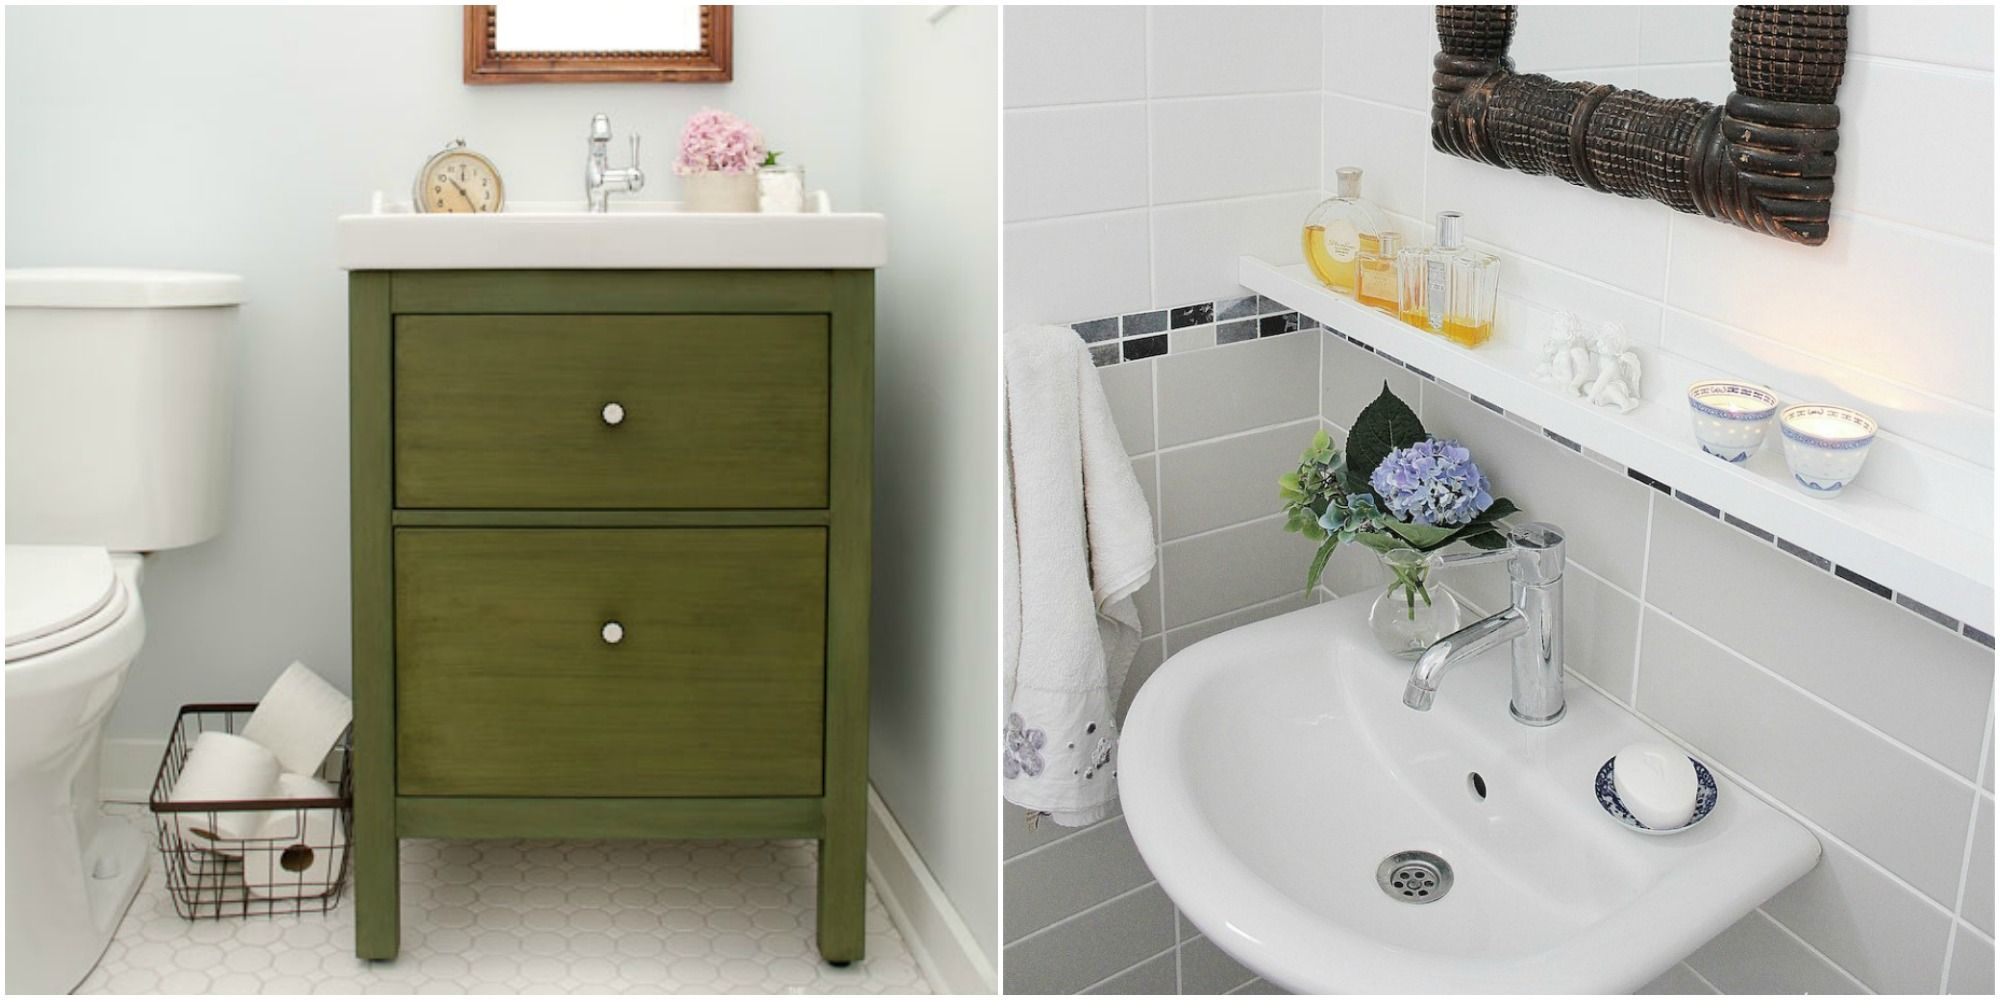 7 IKEA Bathroom Hacks - New Uses for IKEA Items In the Bathroom